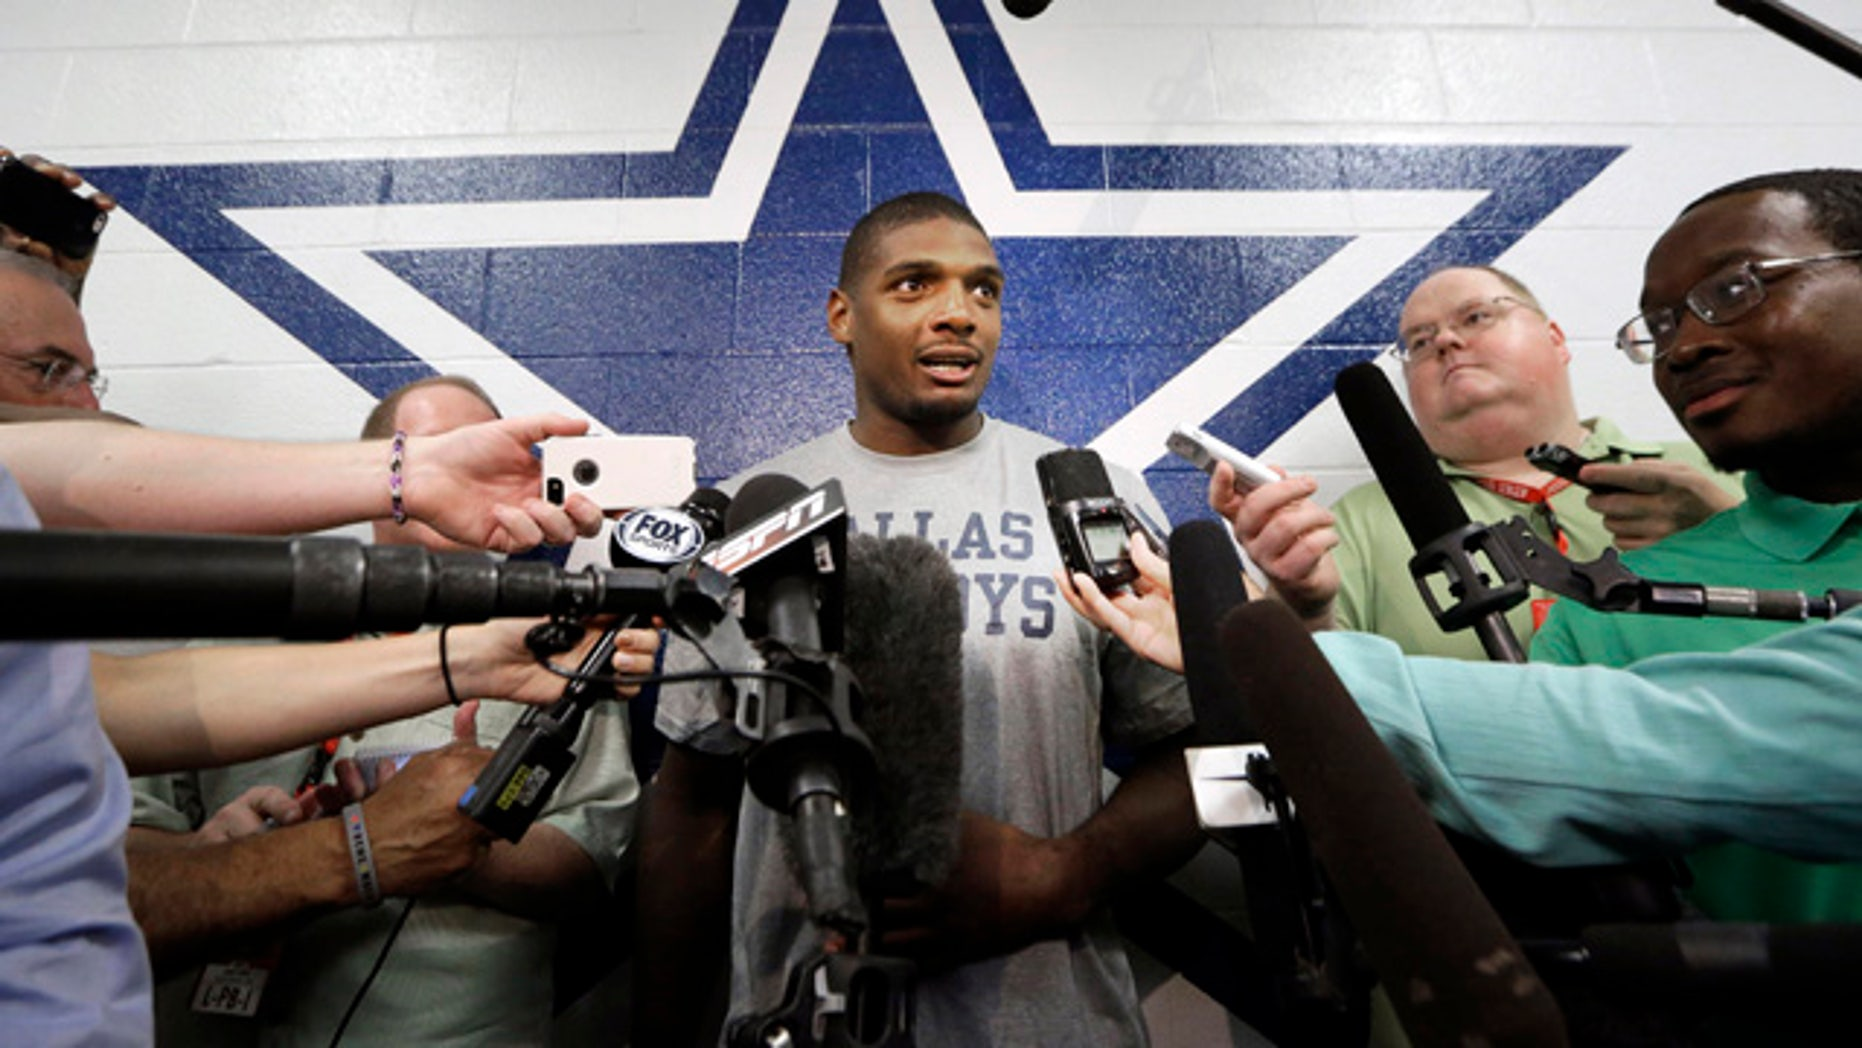 September 3, 2014: Dallas Cowboys practice squad player defensive end Michael Sam speaks to reporters after team practice at the team's headquarters in Irving, Texas. (AP Photo/LM Otero)